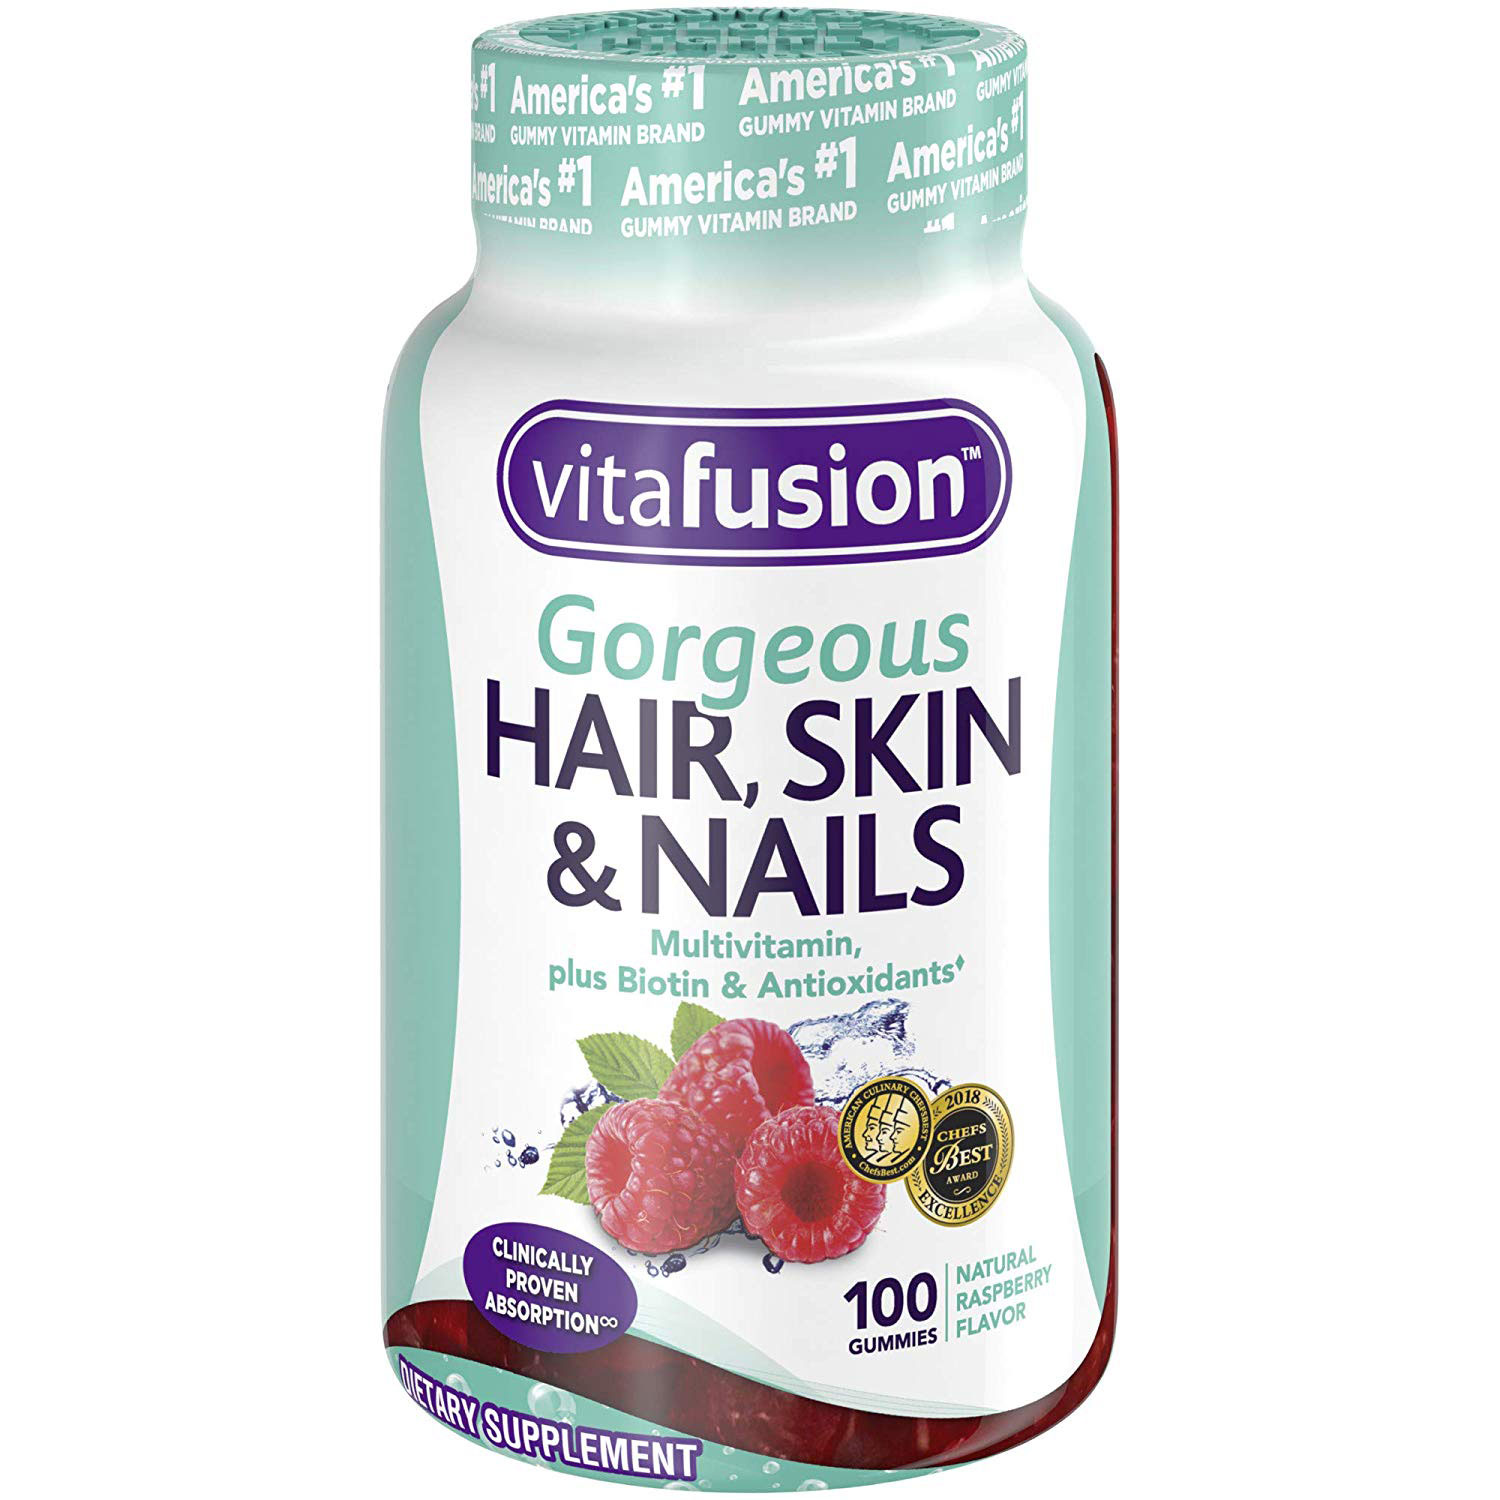 Vitafusion Gorgeous Hair, Skin & Nails